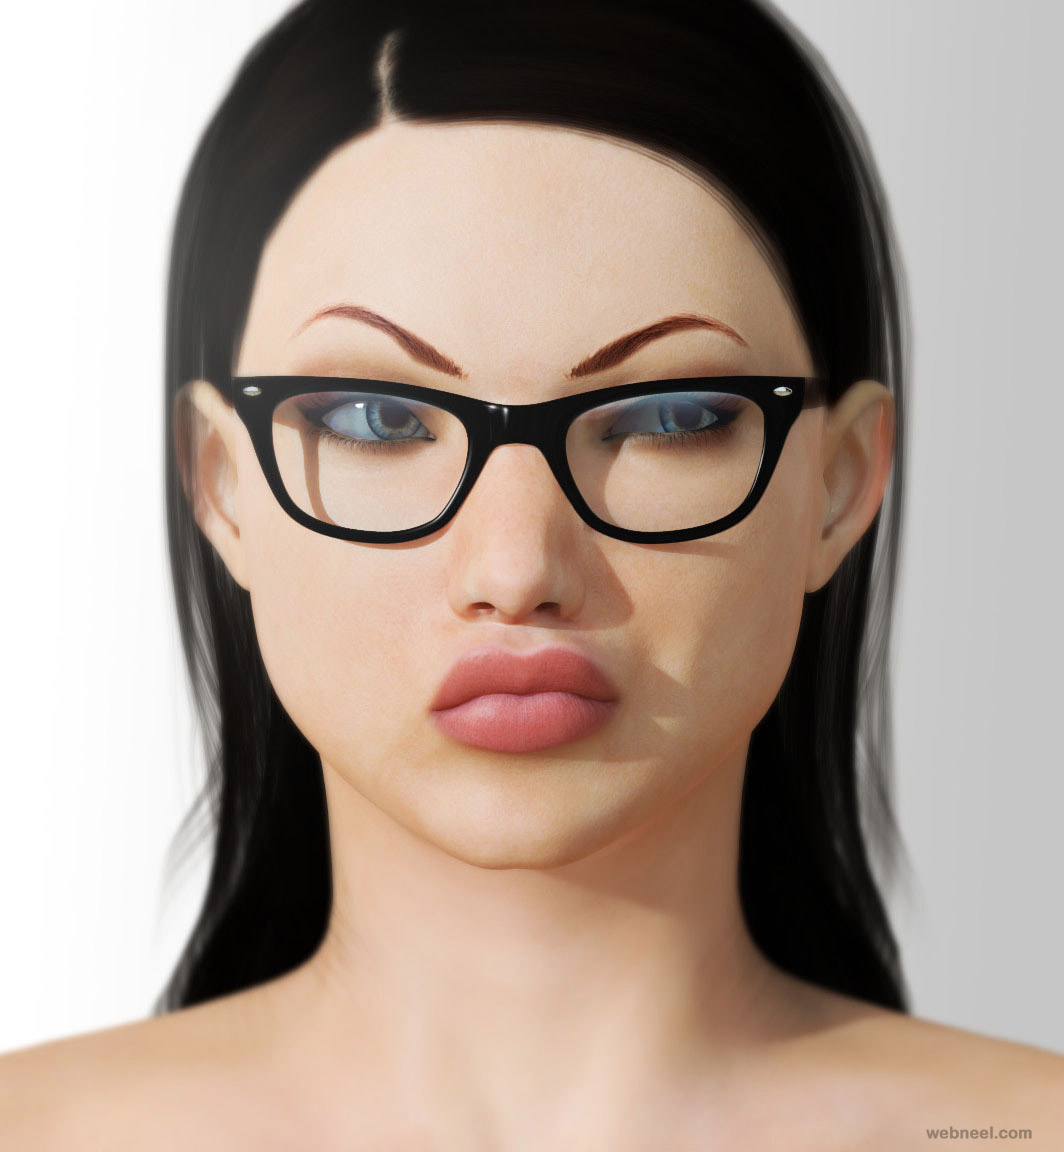 poser 3d models girls